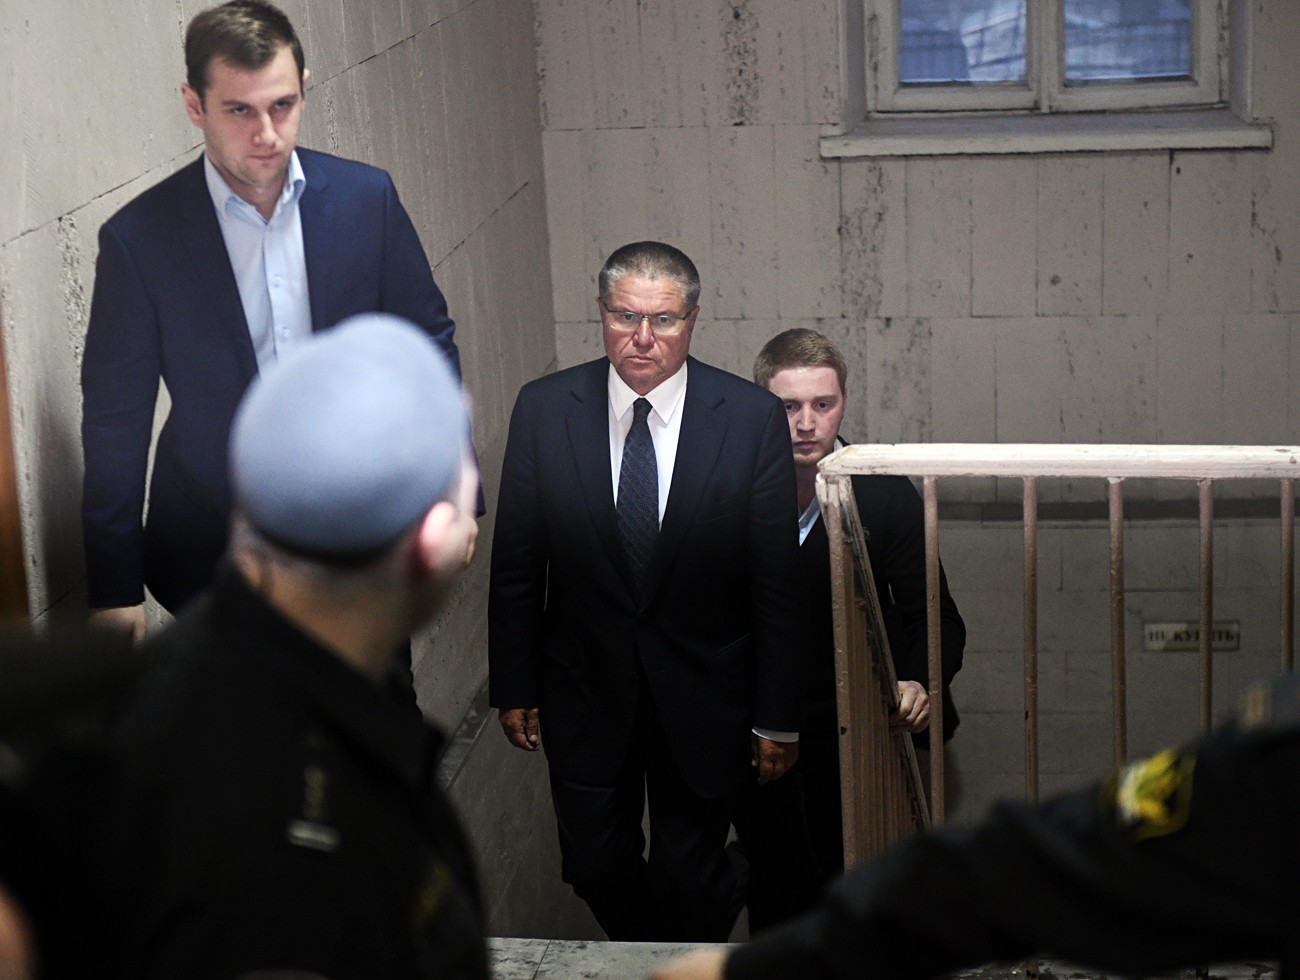 Russian Economic Development Minister Alexei Ulyukayev at Moscow's Basmanny Court.